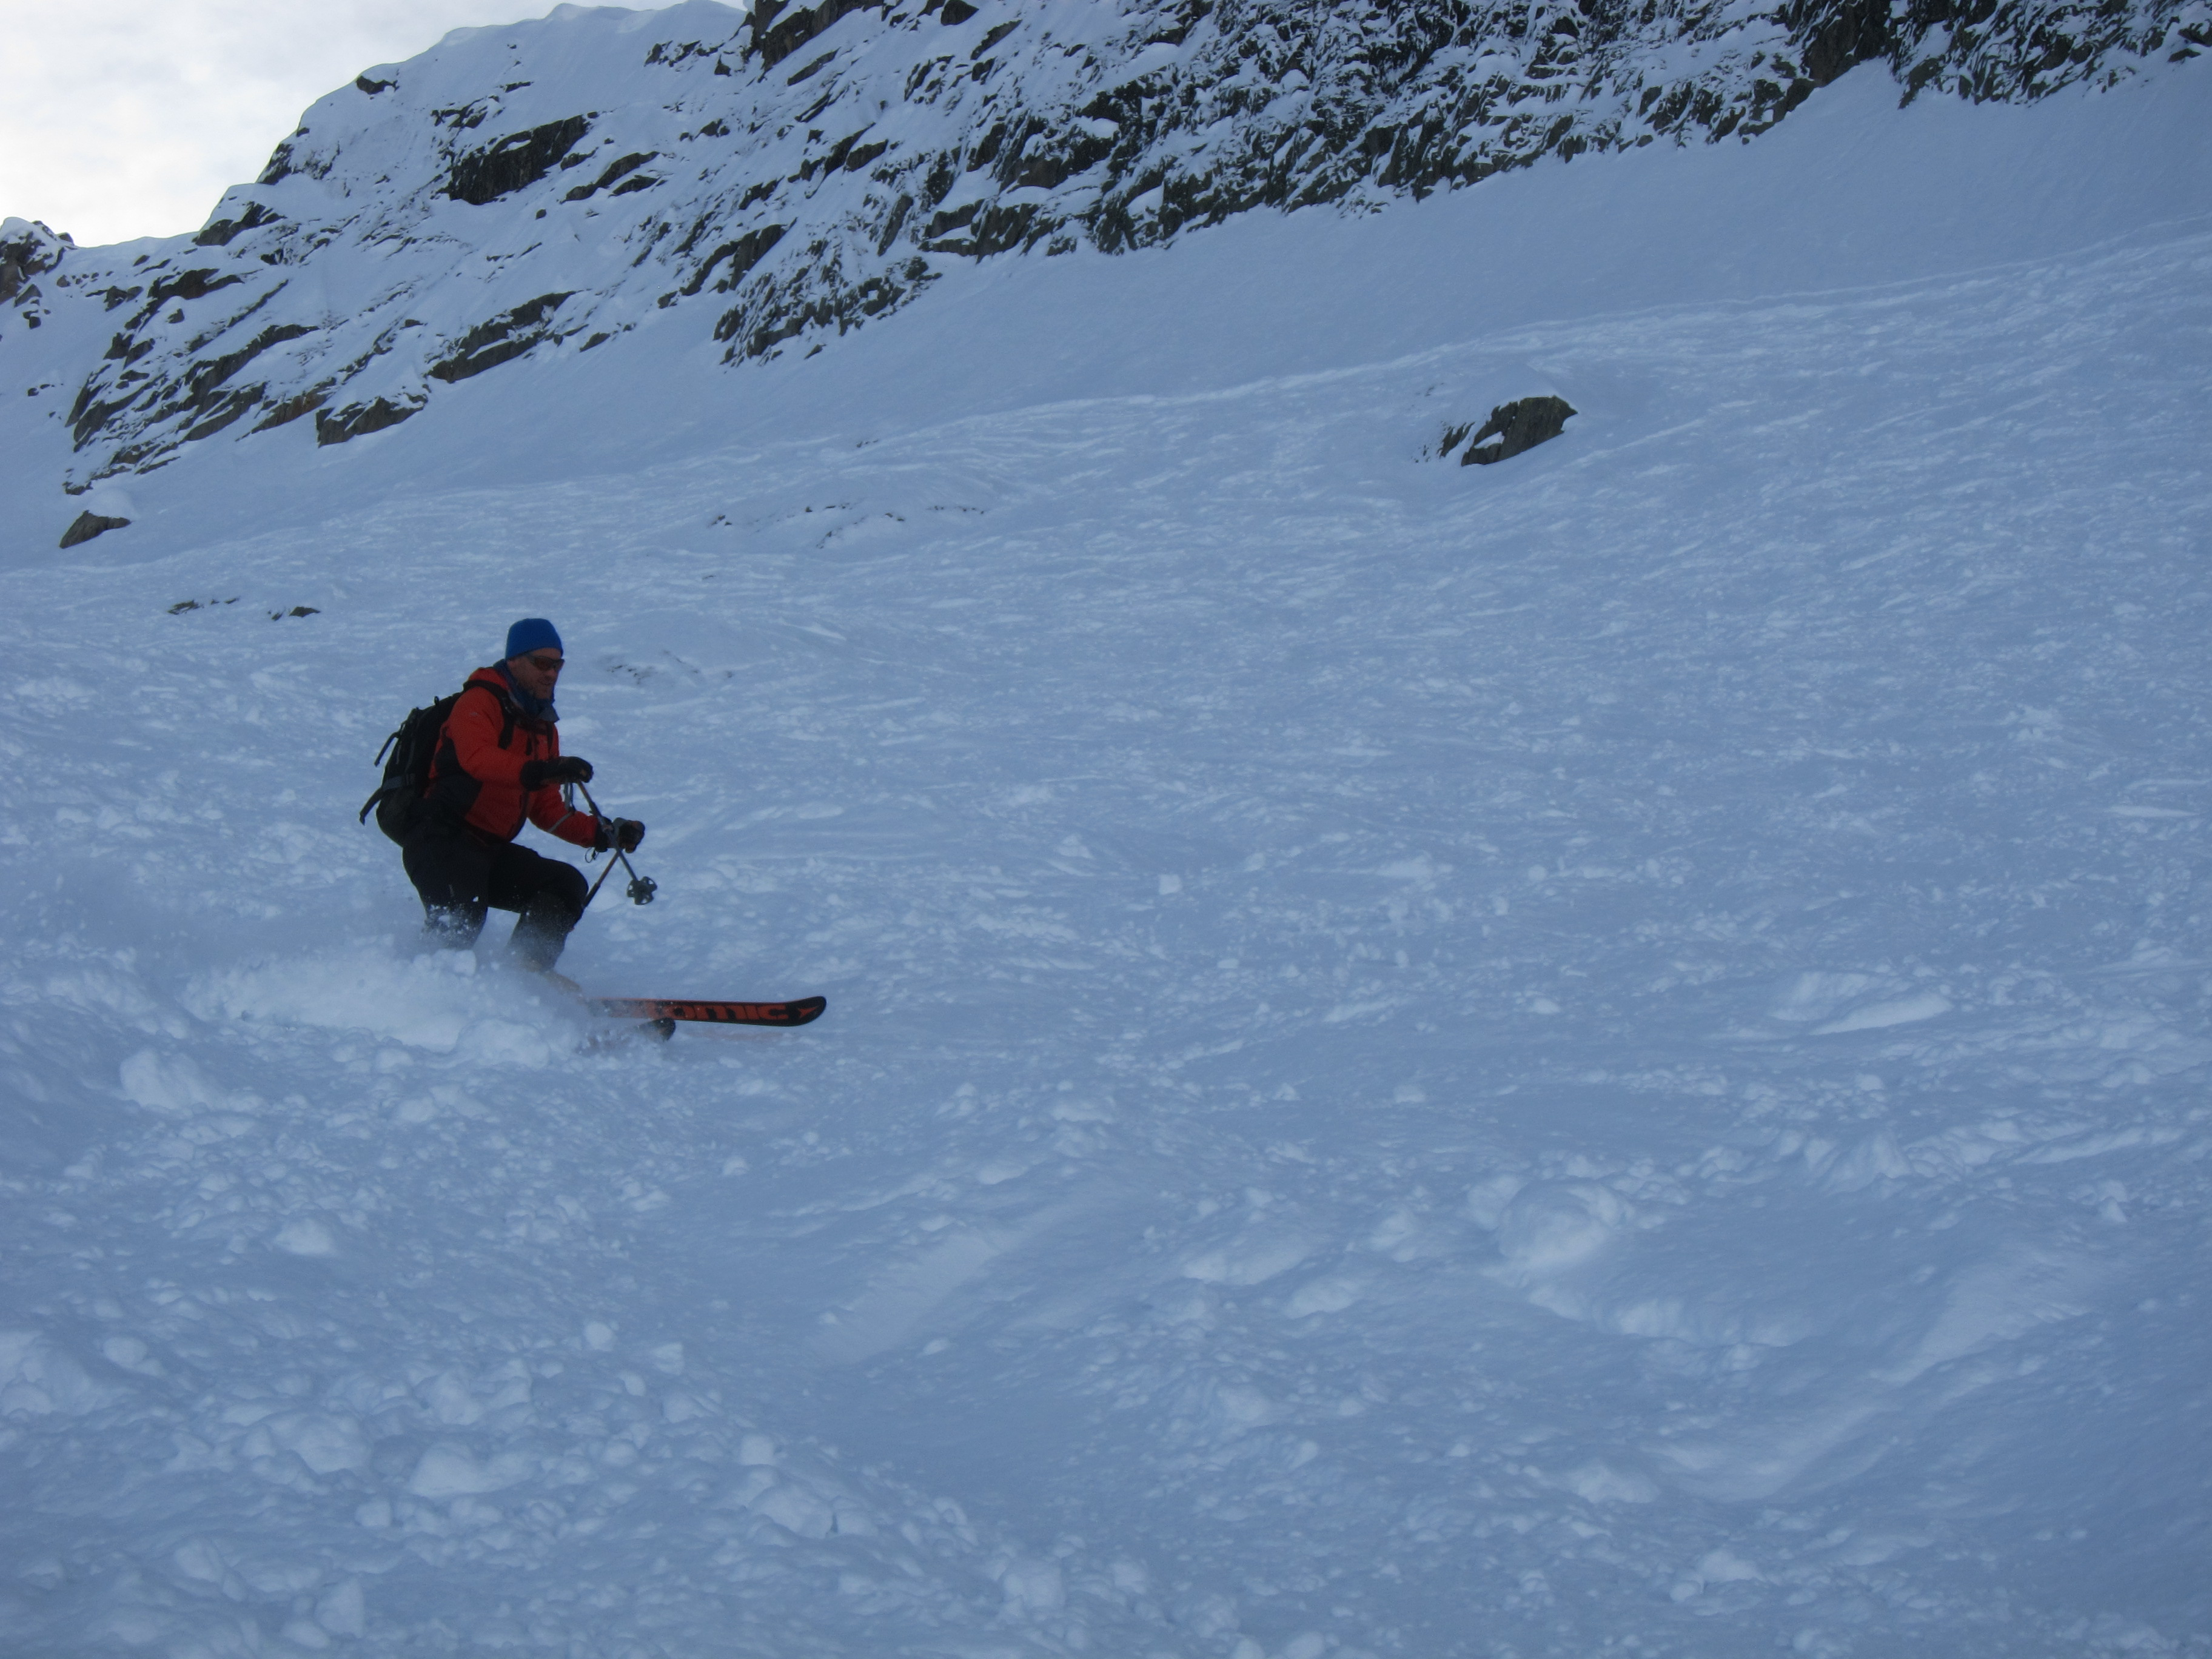 Totally skied out lumps below the herse lift